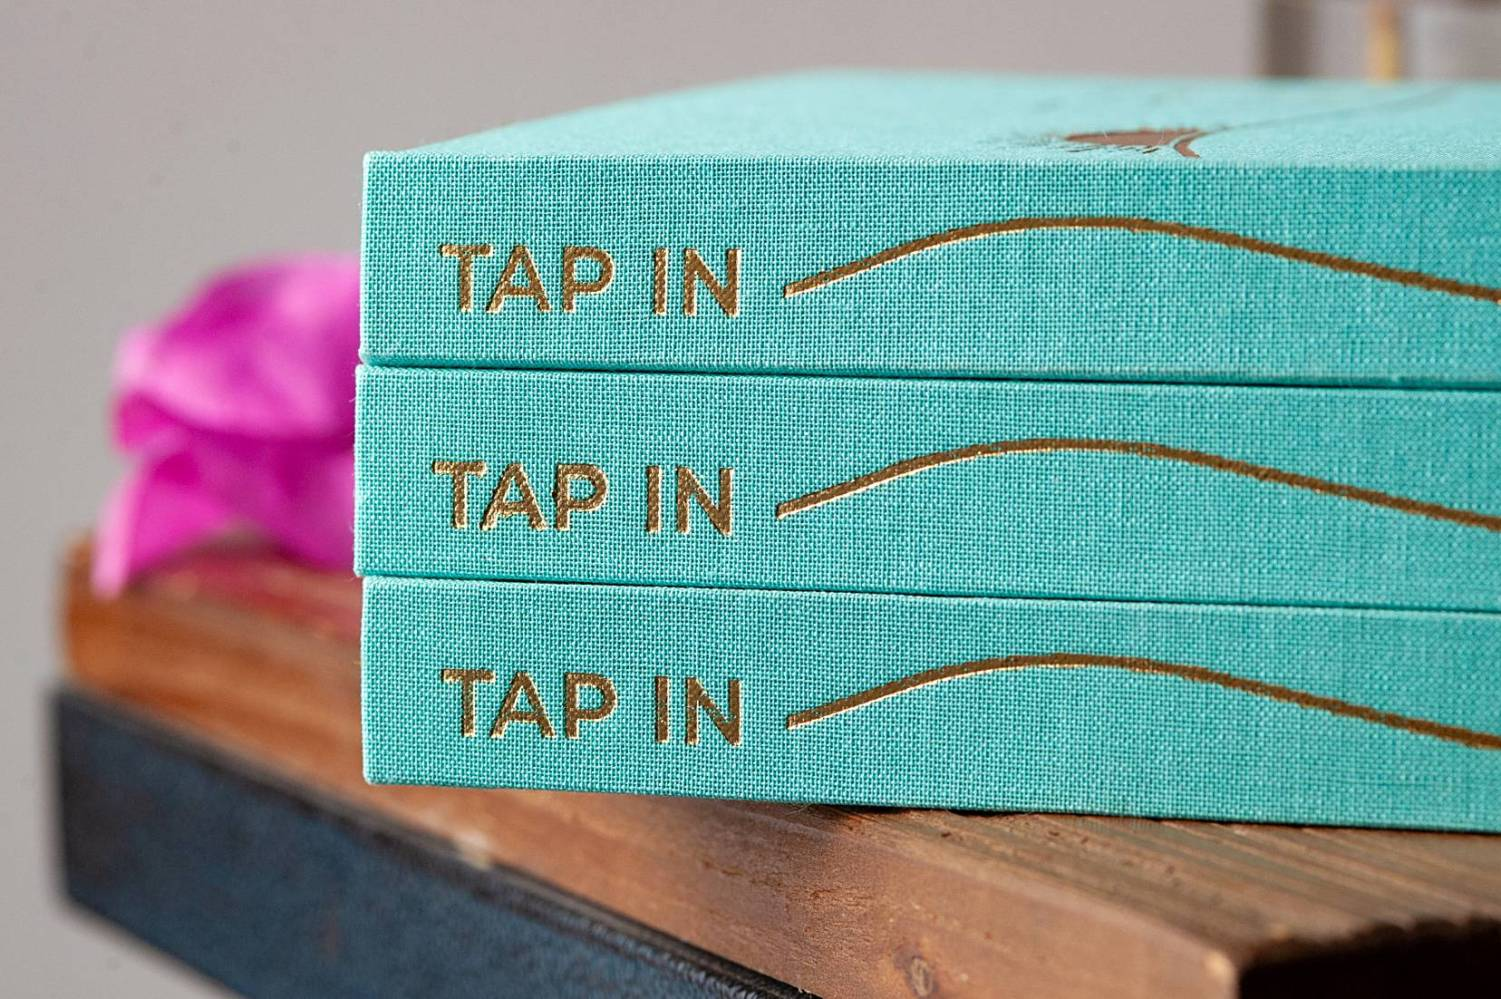 TAP IN wellness journal stacked